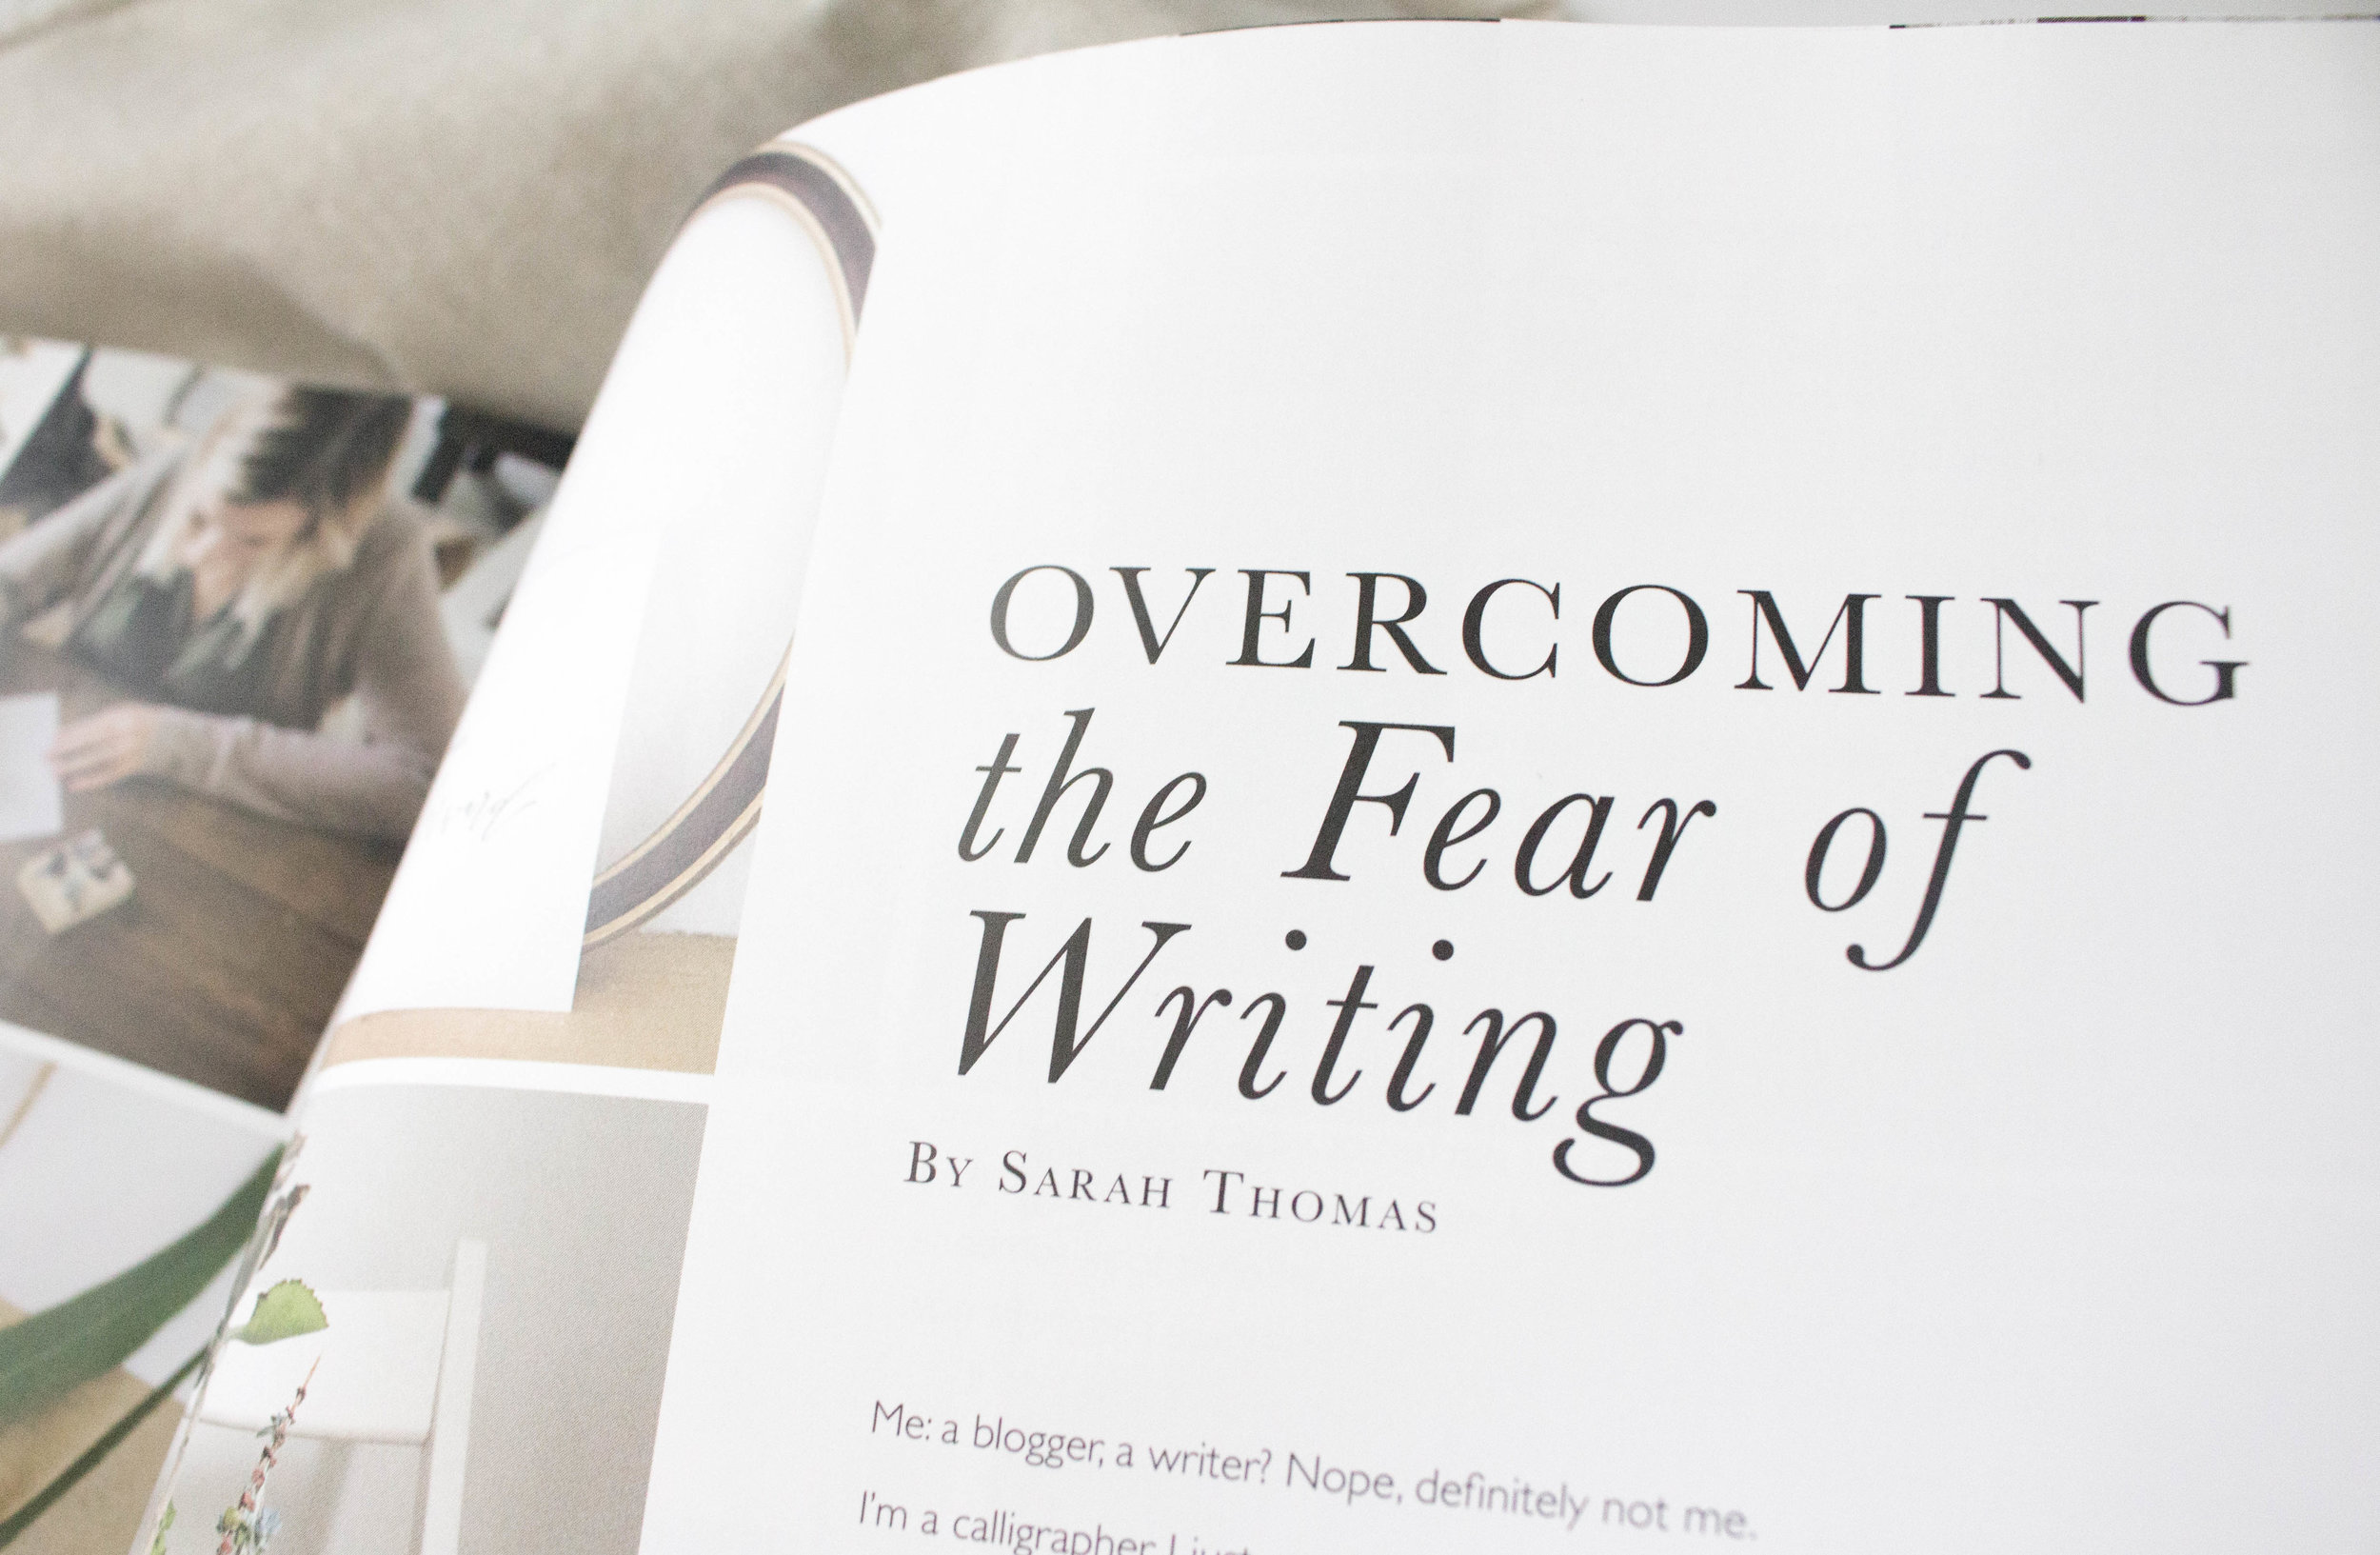 Overcoming the Fear of Writing - Sarah Thomas of True North Paper Co featured in Artful Blogging Summer 2017 Issue